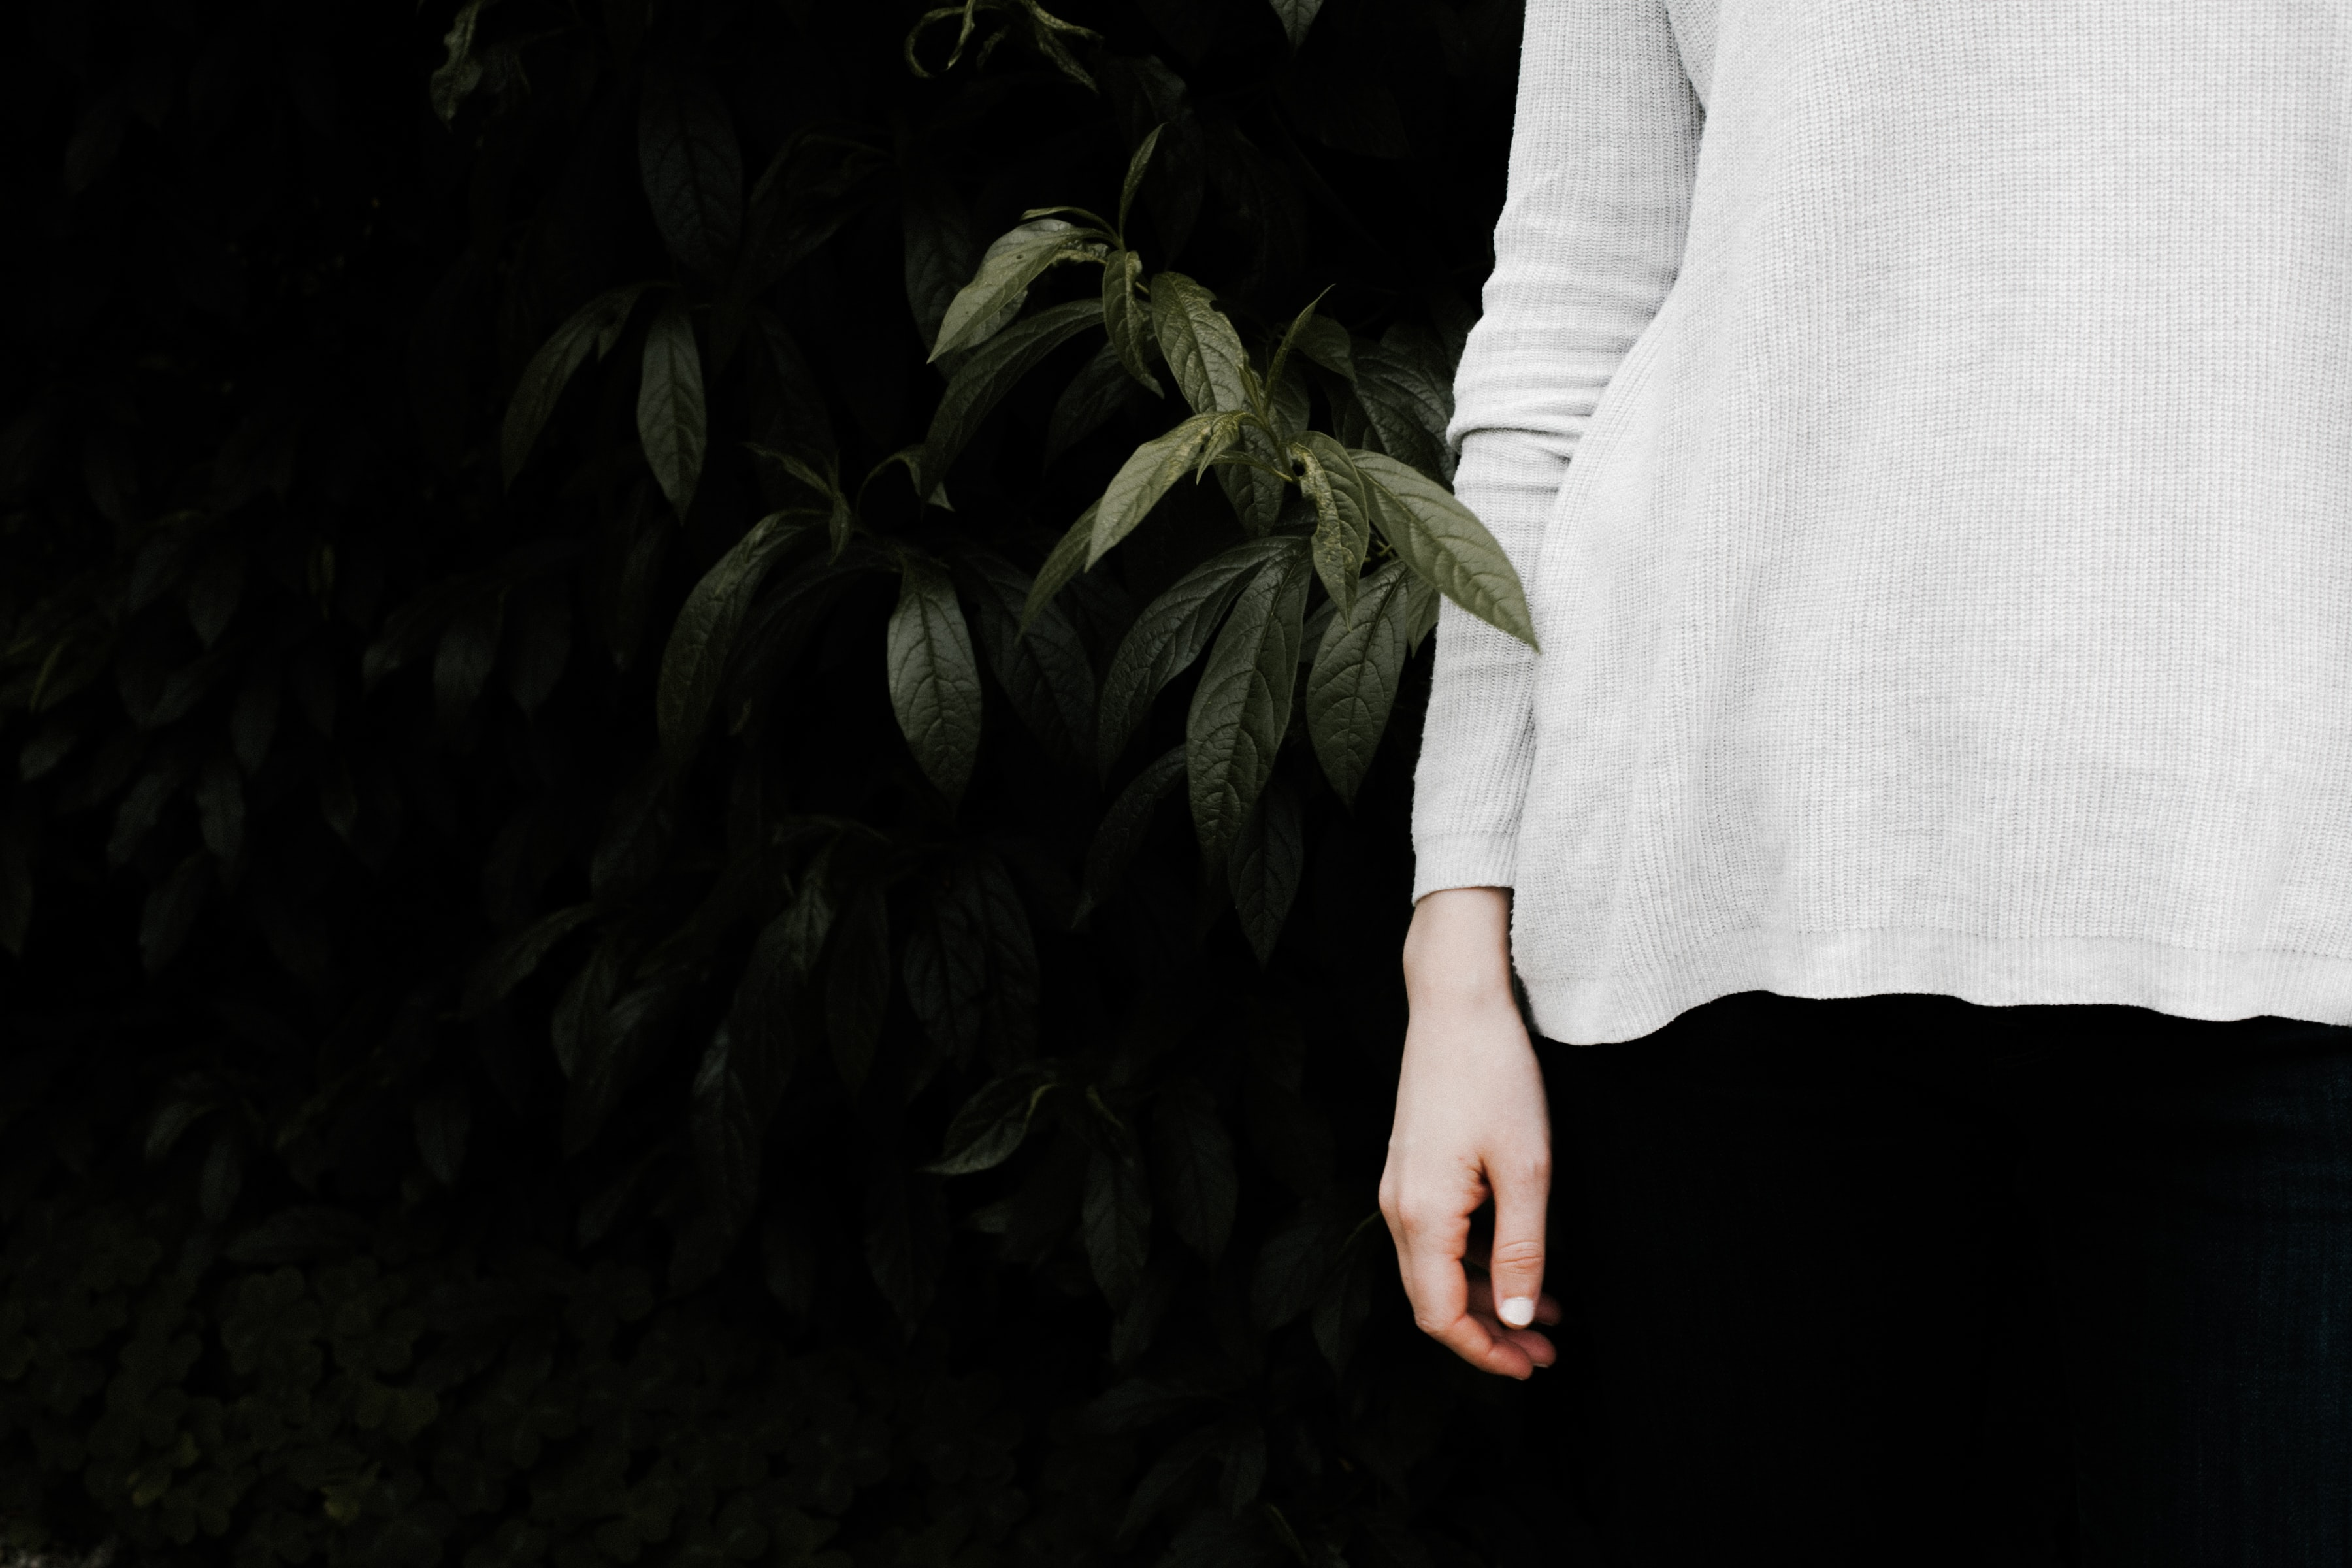 person wearing white long-sleeved shirt standing near green leaf bush